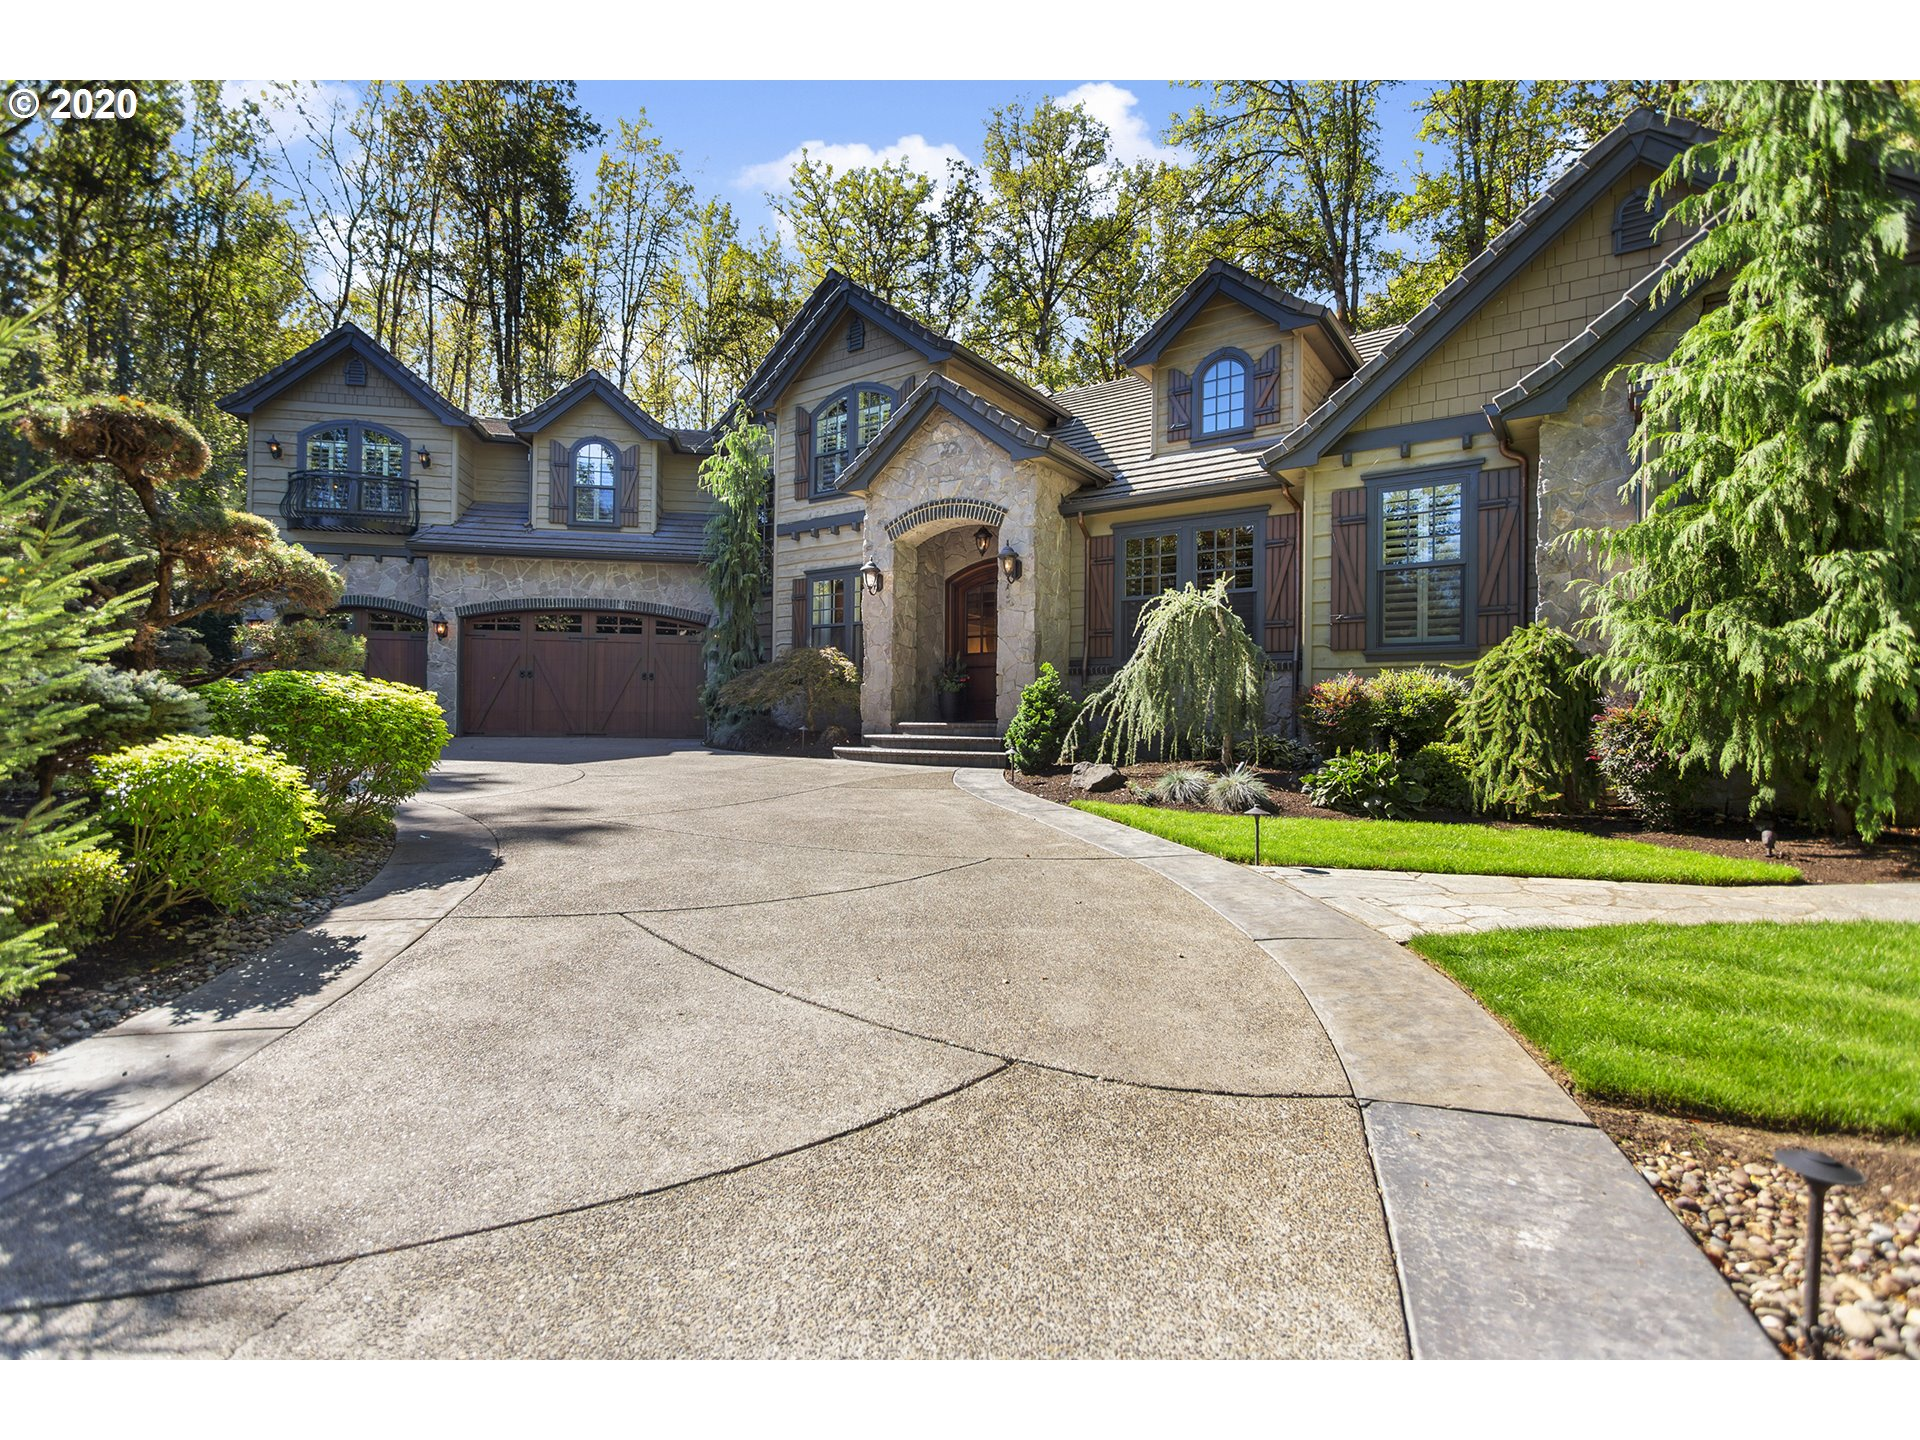 Come home to a private, French Country sanctuary on .66 acres with gated entry in Lake Oswego's Glenmorrie neighborhood. Timeless finishes, Old World touches & deluxe features combine to create a classically beautiful home with a luxurious & livable floor plan. Master on the main, show stopping kitchen/great room, indoor/outdoor living year-round with covered patio & uncovered outdoor fireplace. Surrounded by green space steps from top-rated Hallinan Elementary & close to downtown.